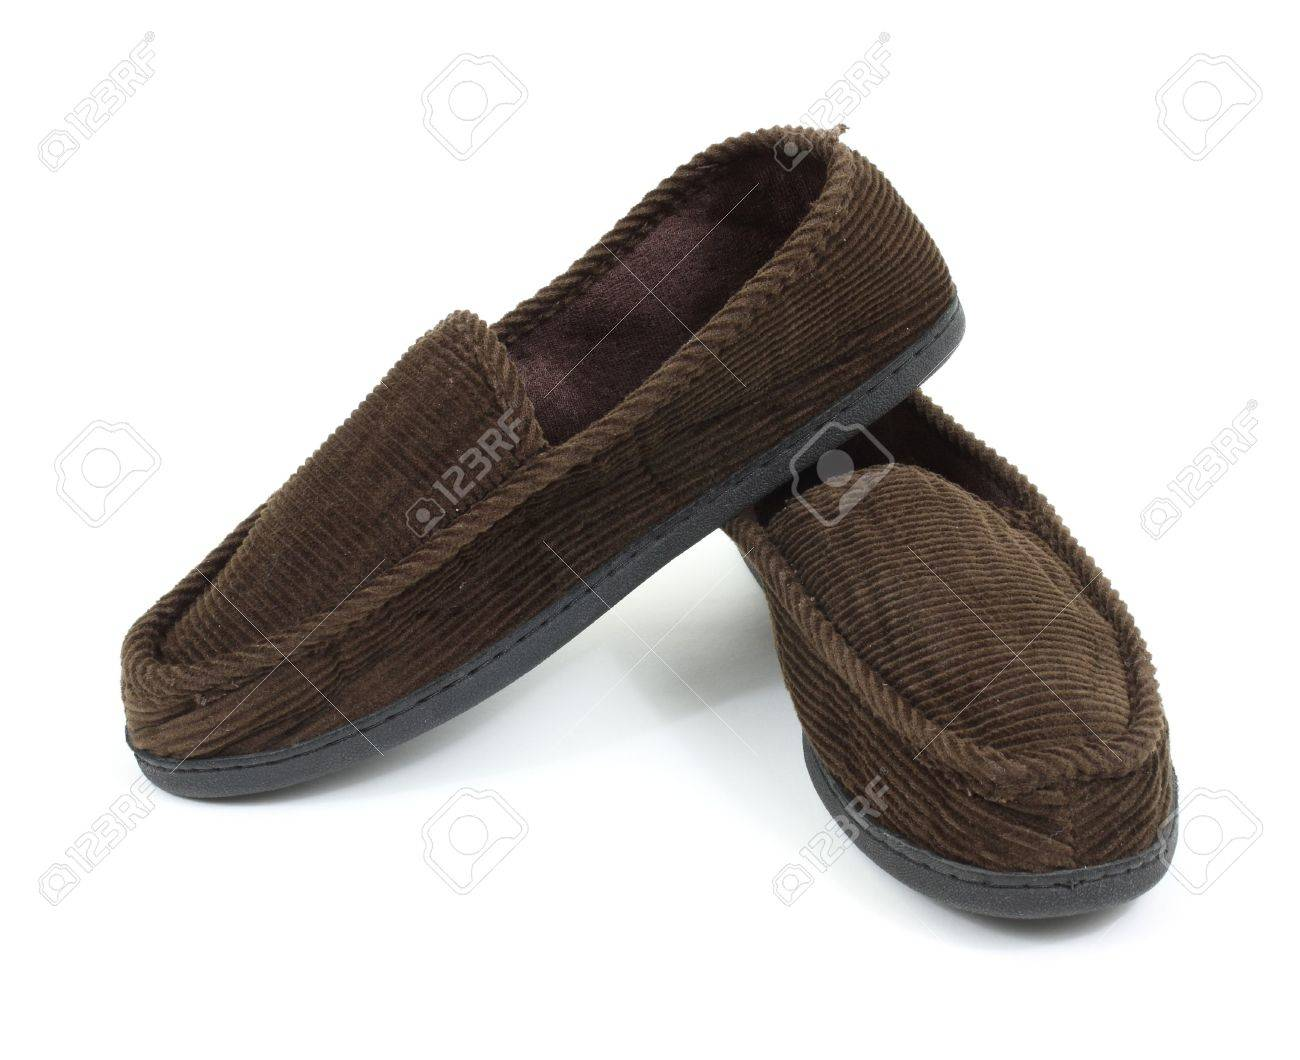 Men Bedroom Slippers A Pair Of Brown Mens House Slippers Against A White Background